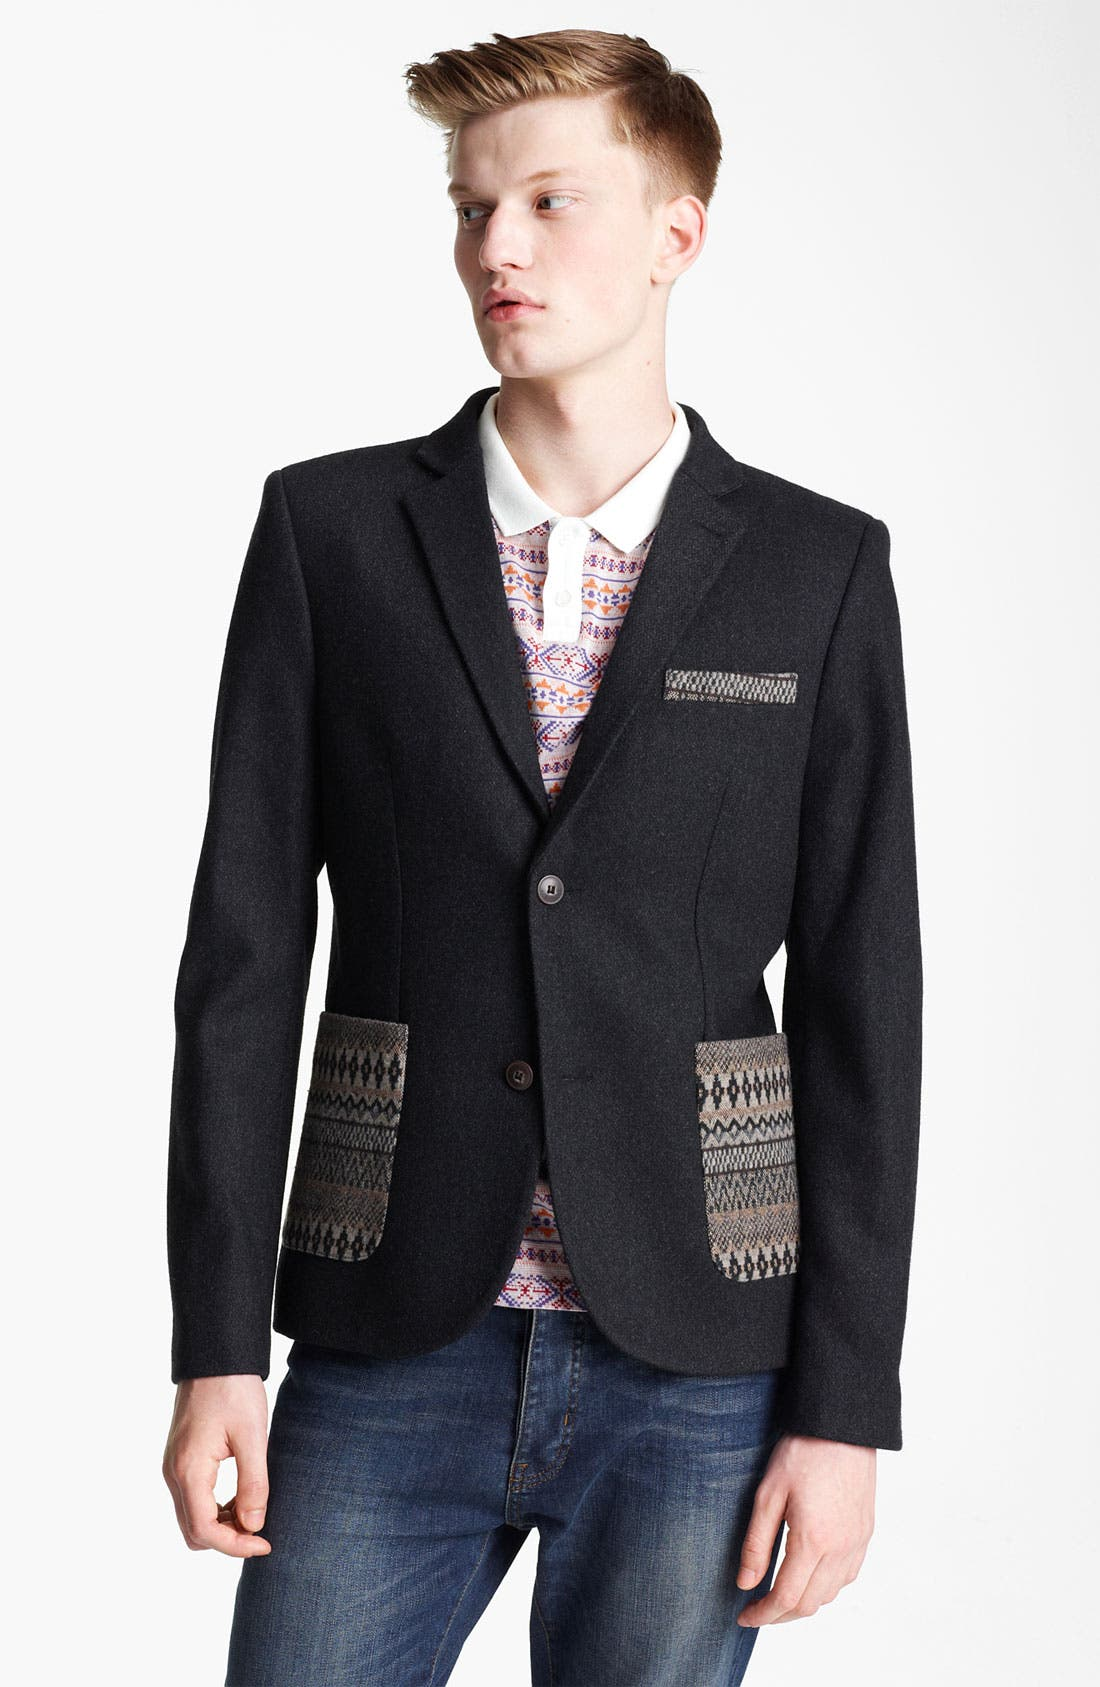 Alternate Image 1 Selected - Topman 'Aztec' Print Trim Blazer